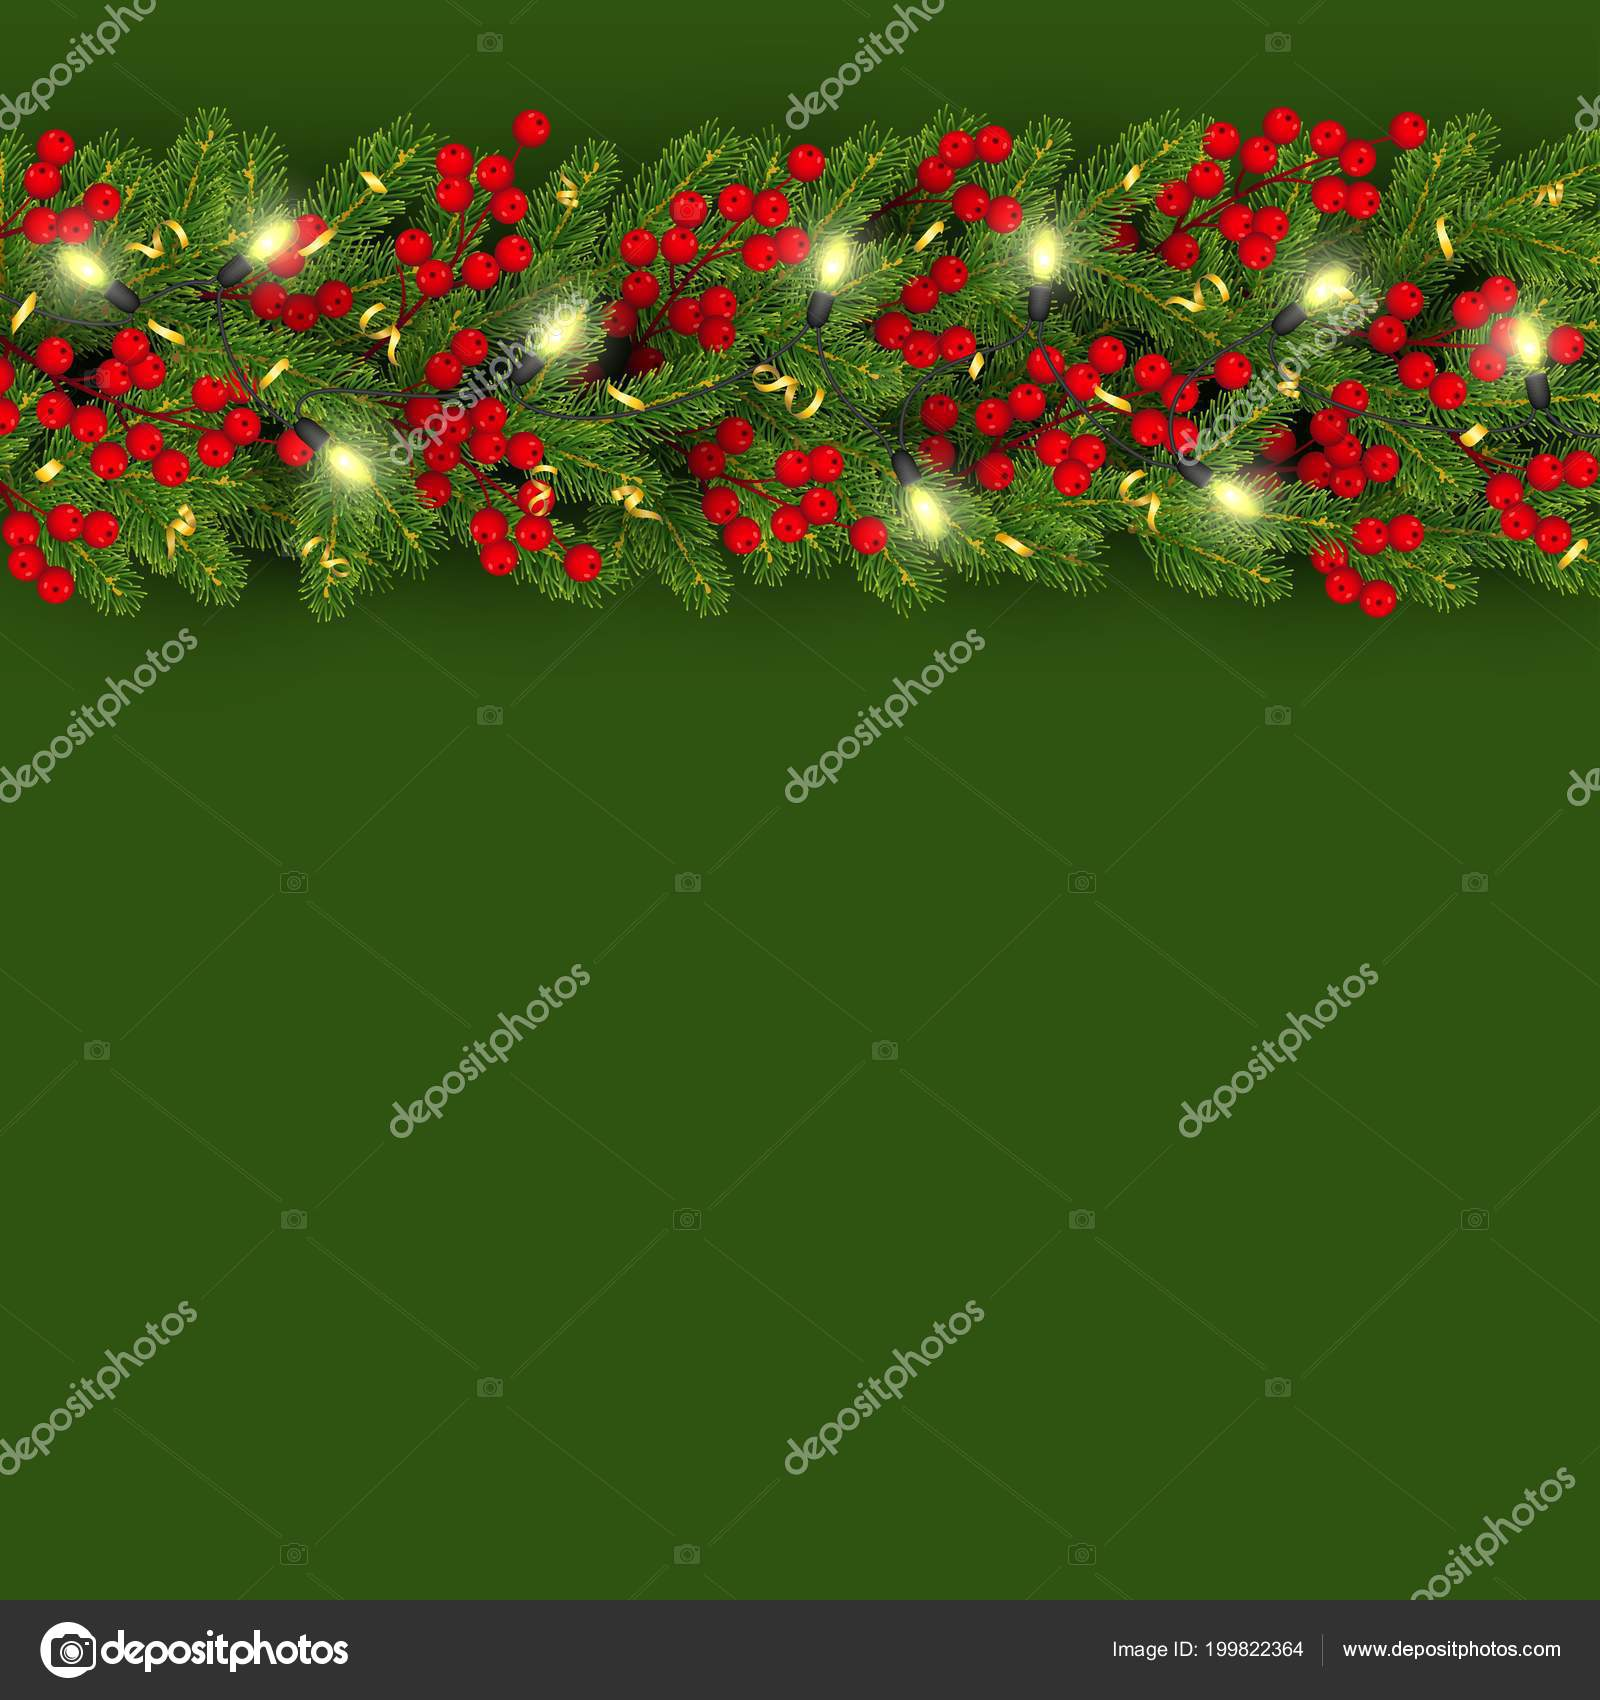 christmas and new year banner template with realistic branches of christmas tree garland with glowing lightbulbs holly berries serpentine festive